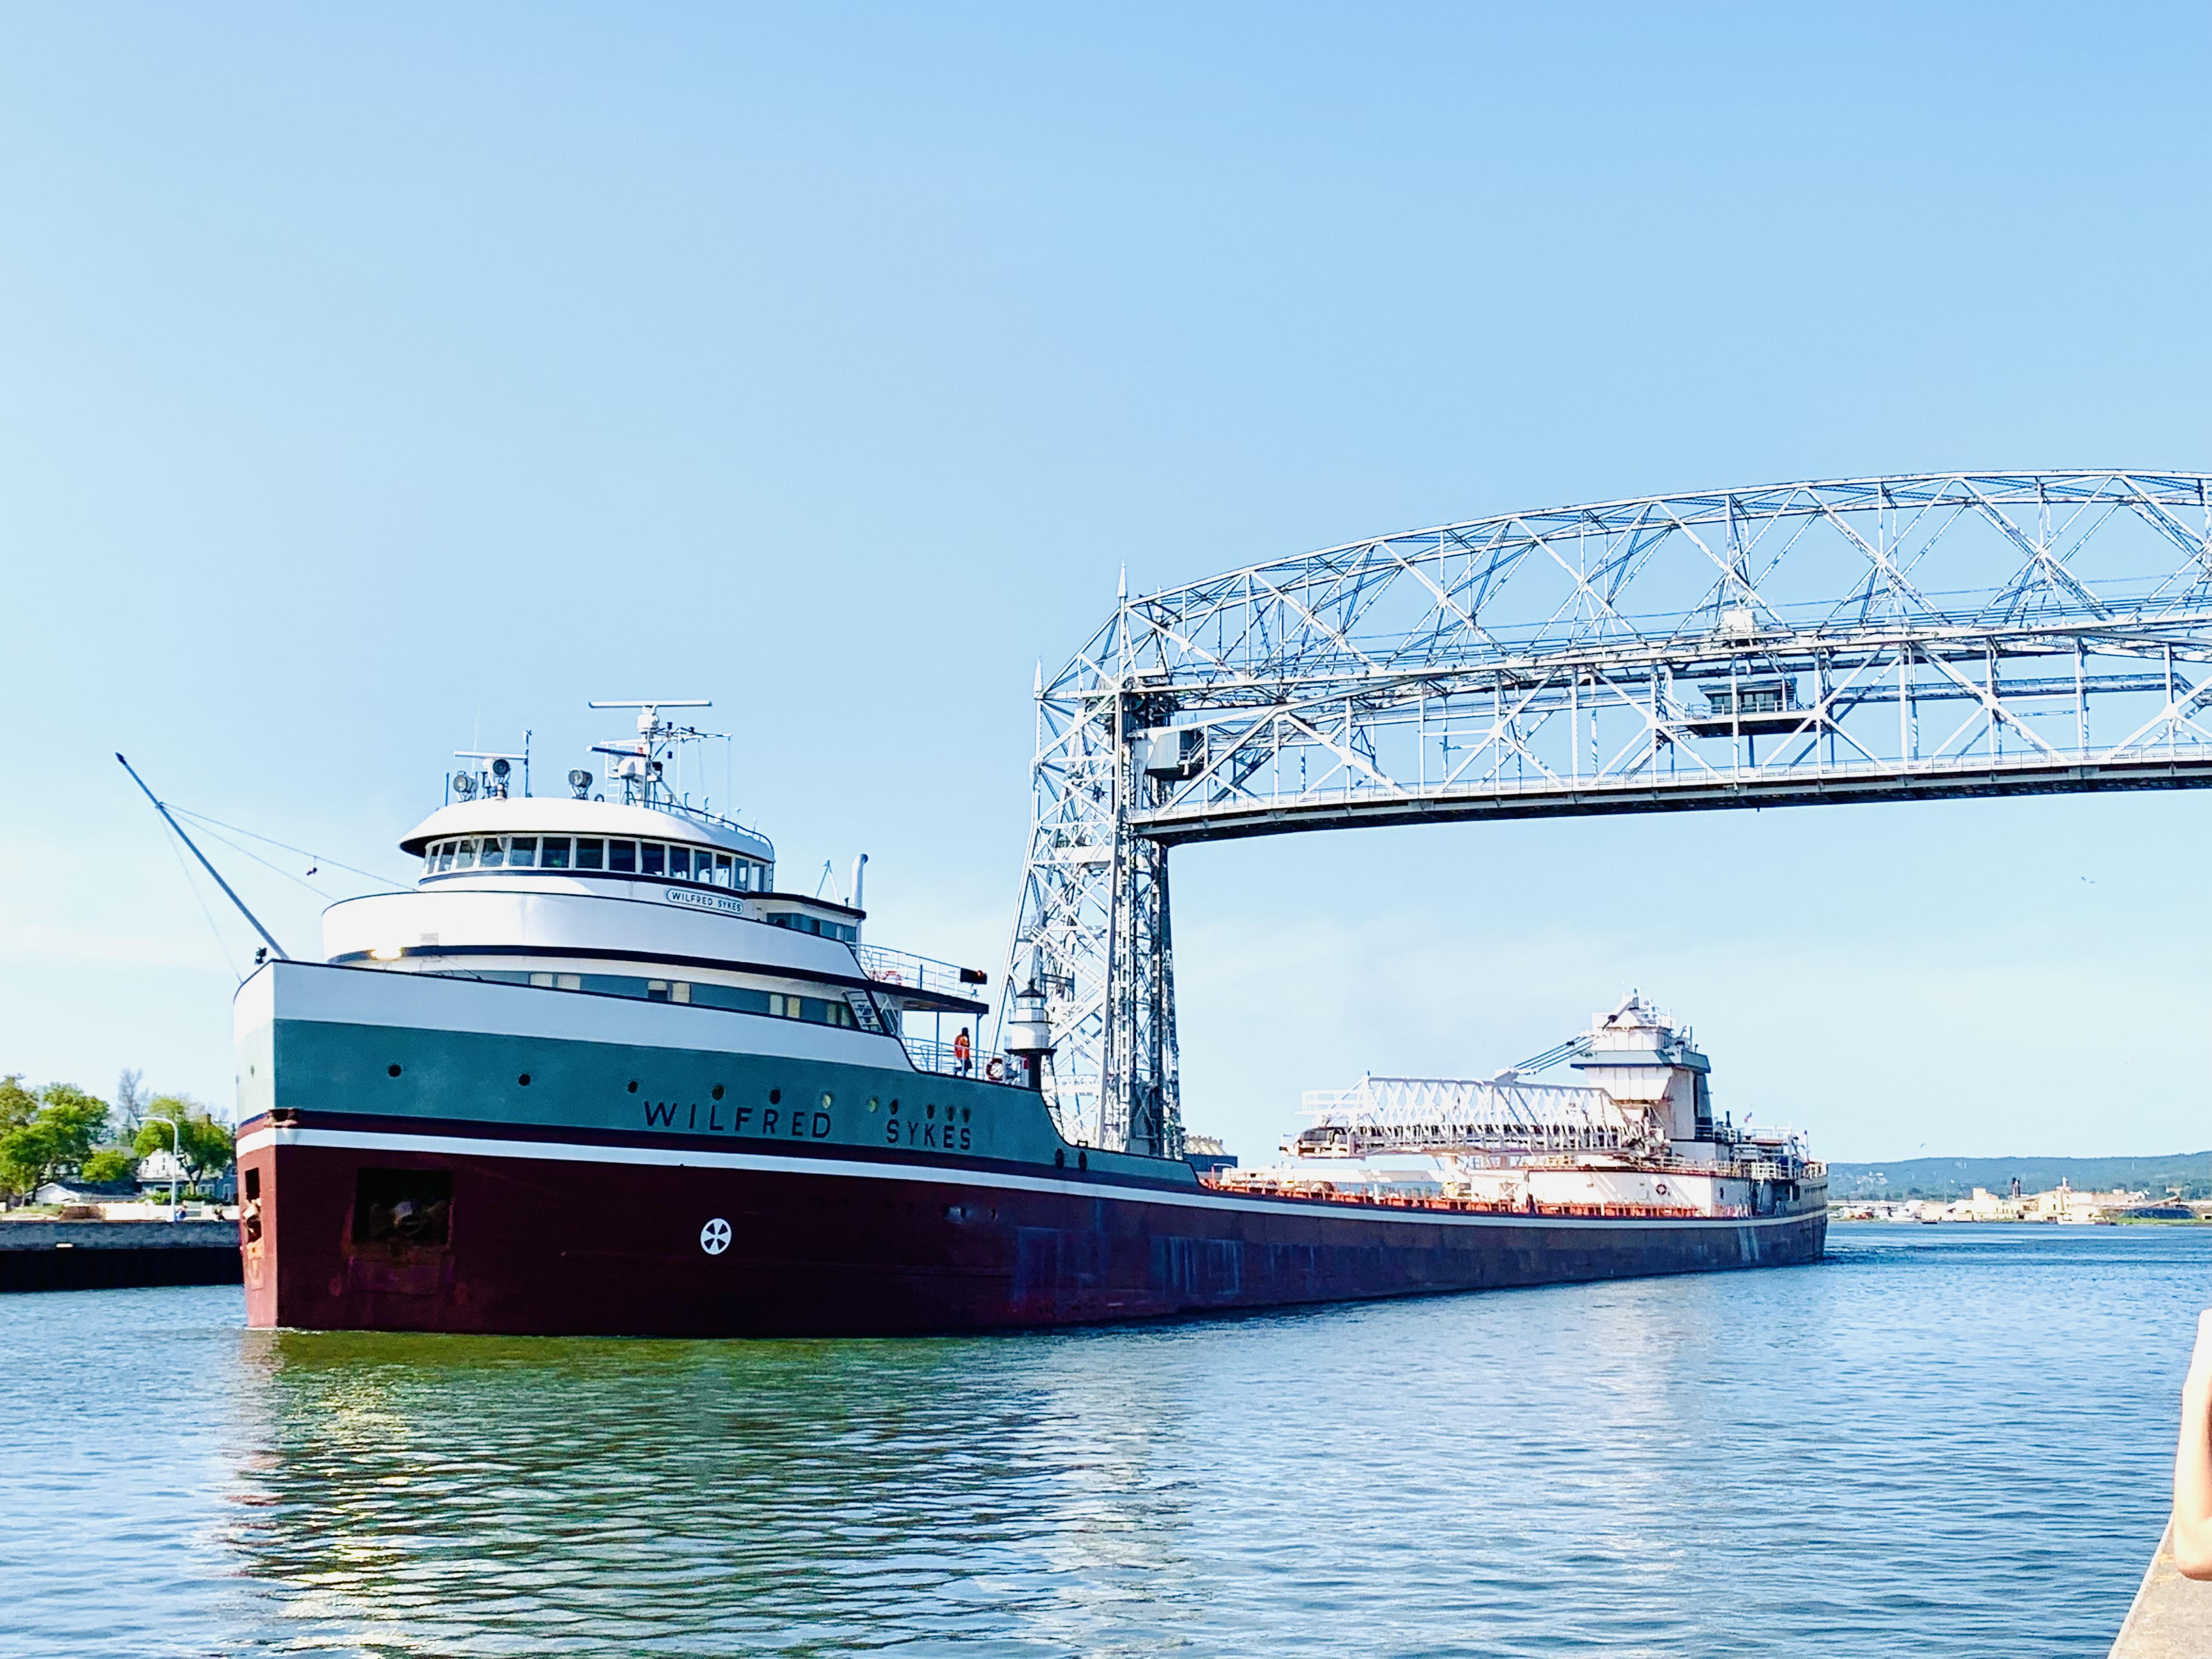 Discover the best Duluth attractions from top U.S. family travel blog, Travel With A Plan:  Aerial Lift Bridge